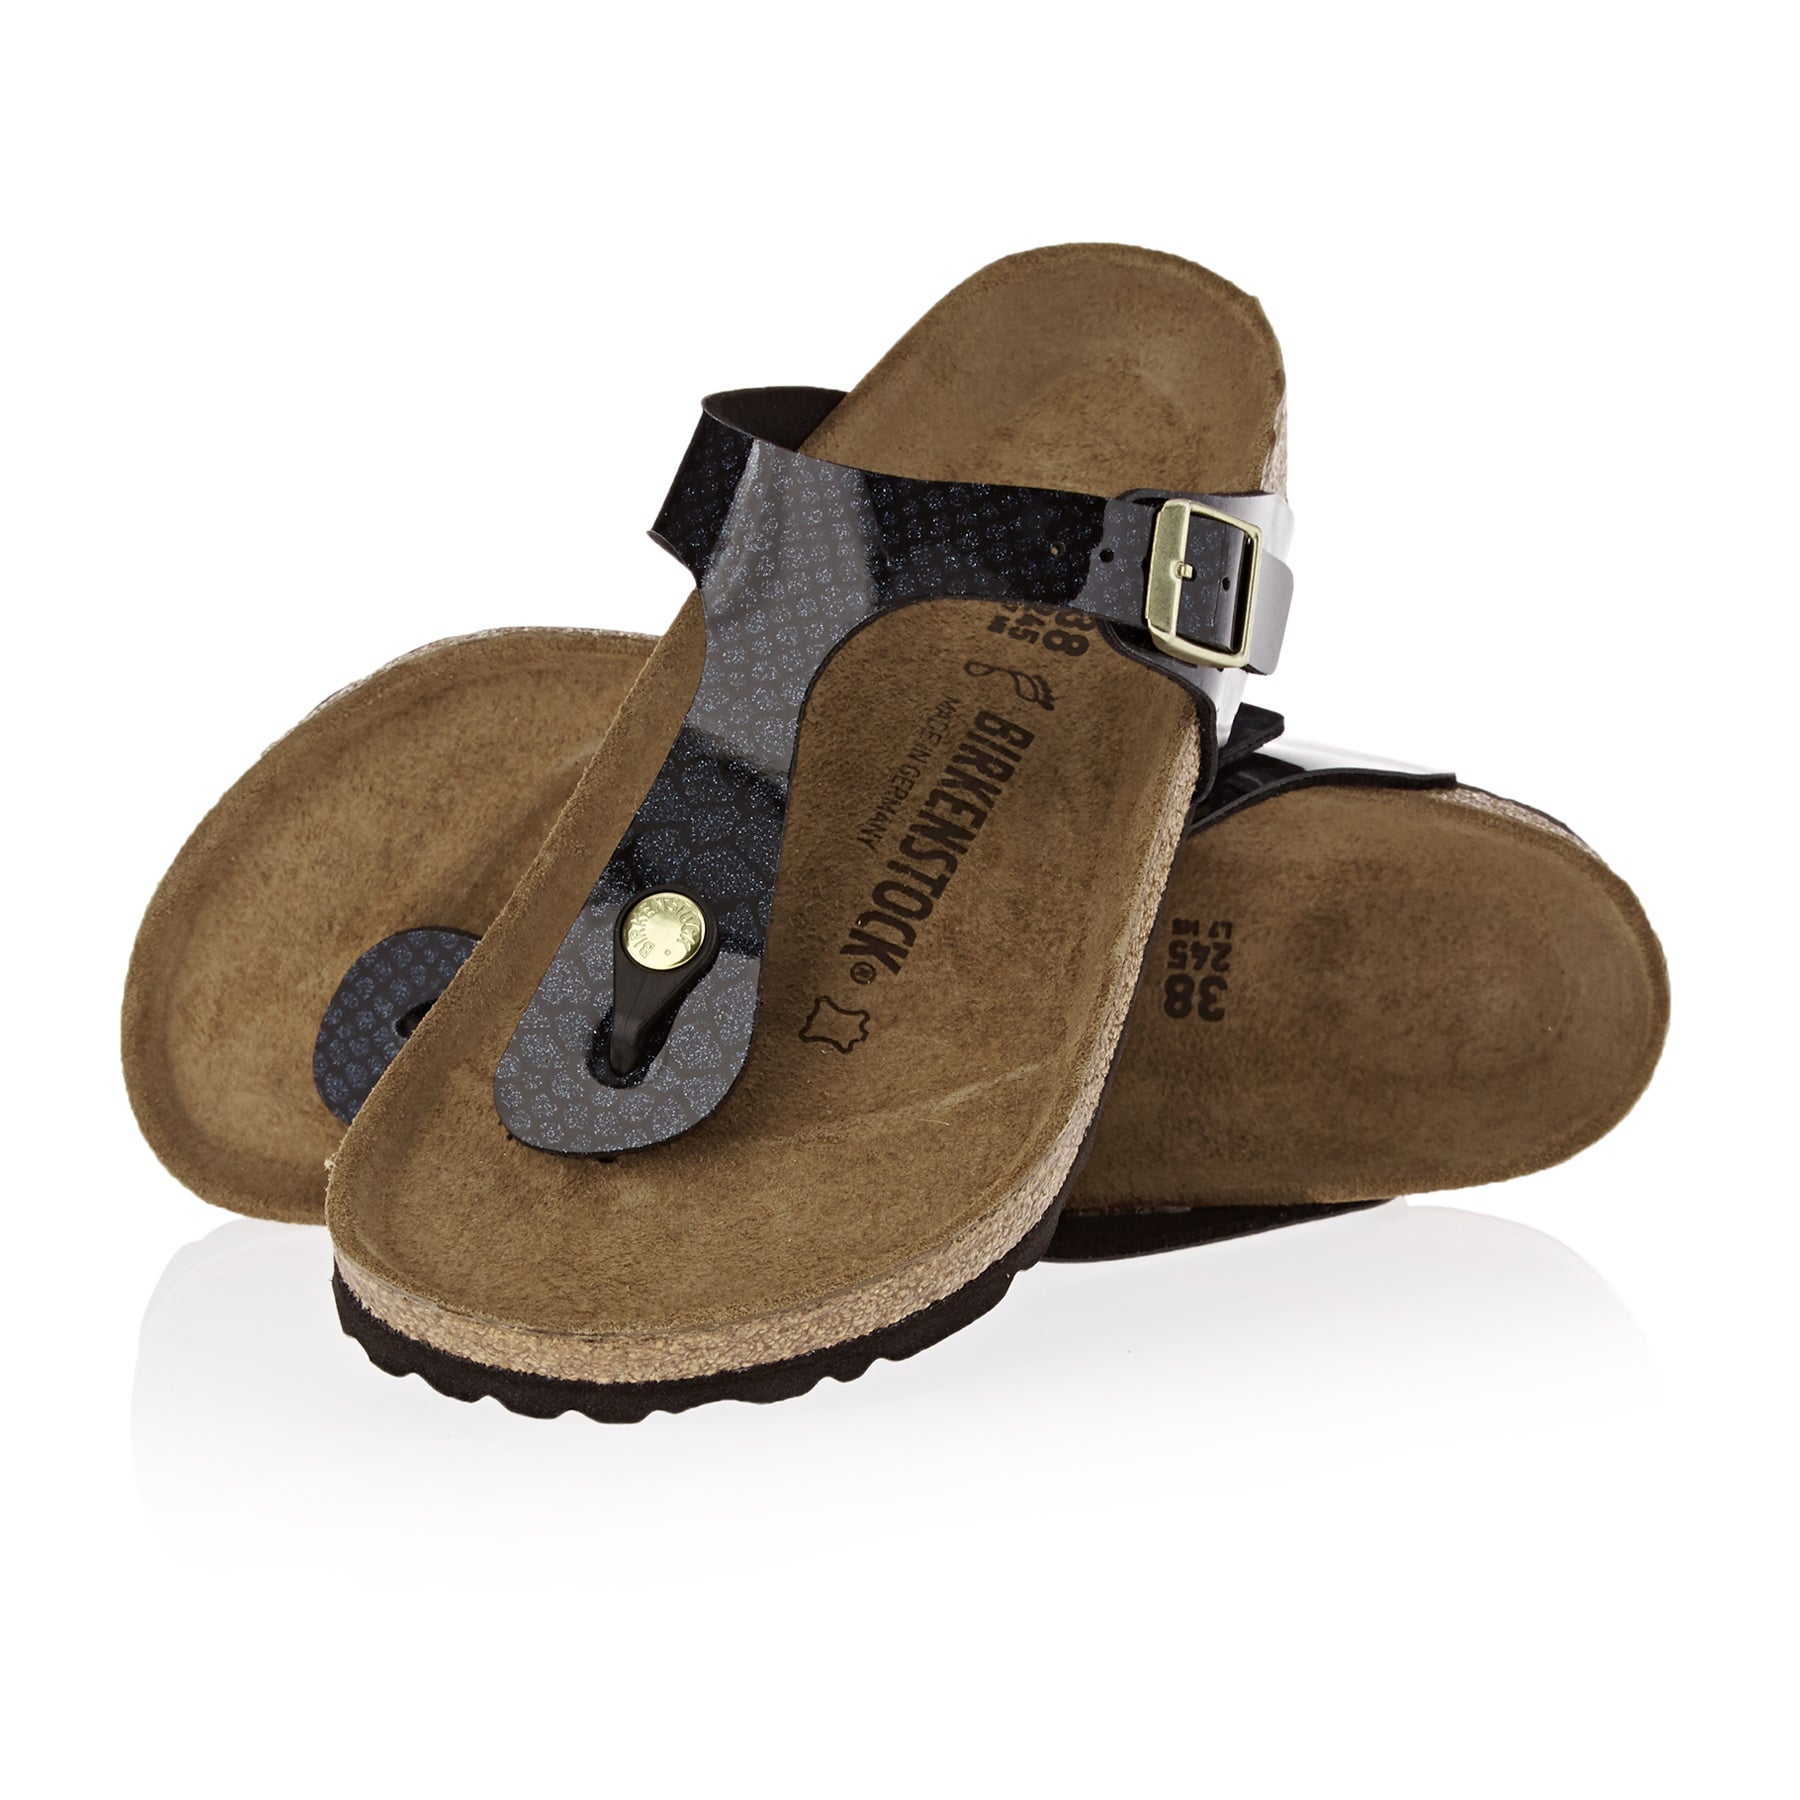 e7b9f95737a5 Birkenstock Gizeh Birko Flor Sandals available from Surfdome